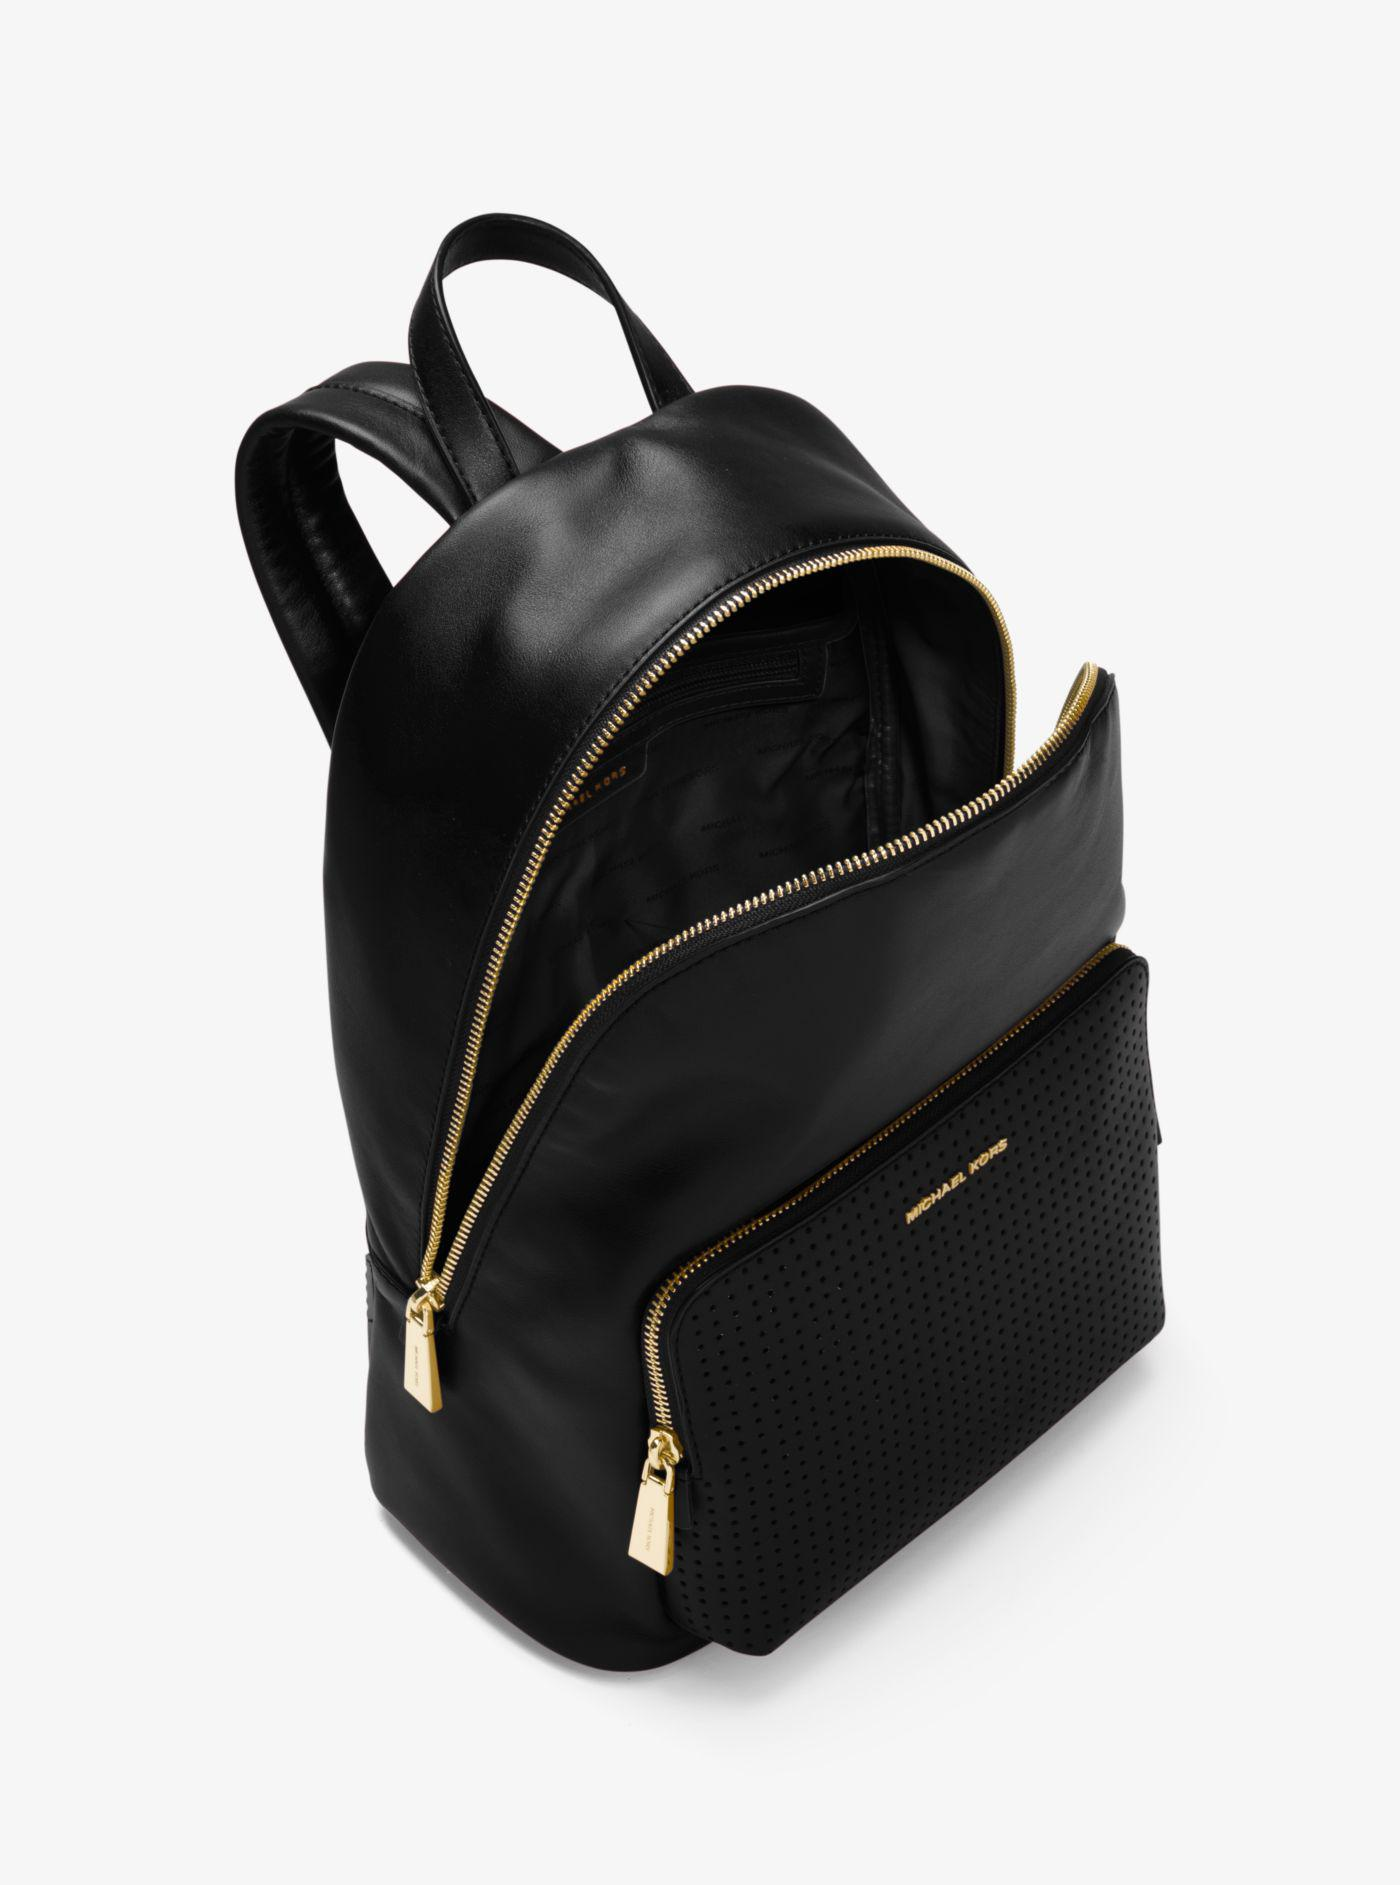 b36a4dacbeb2 Lyst - Michael Kors Wythe Large Perforated Leather Backpack in Black